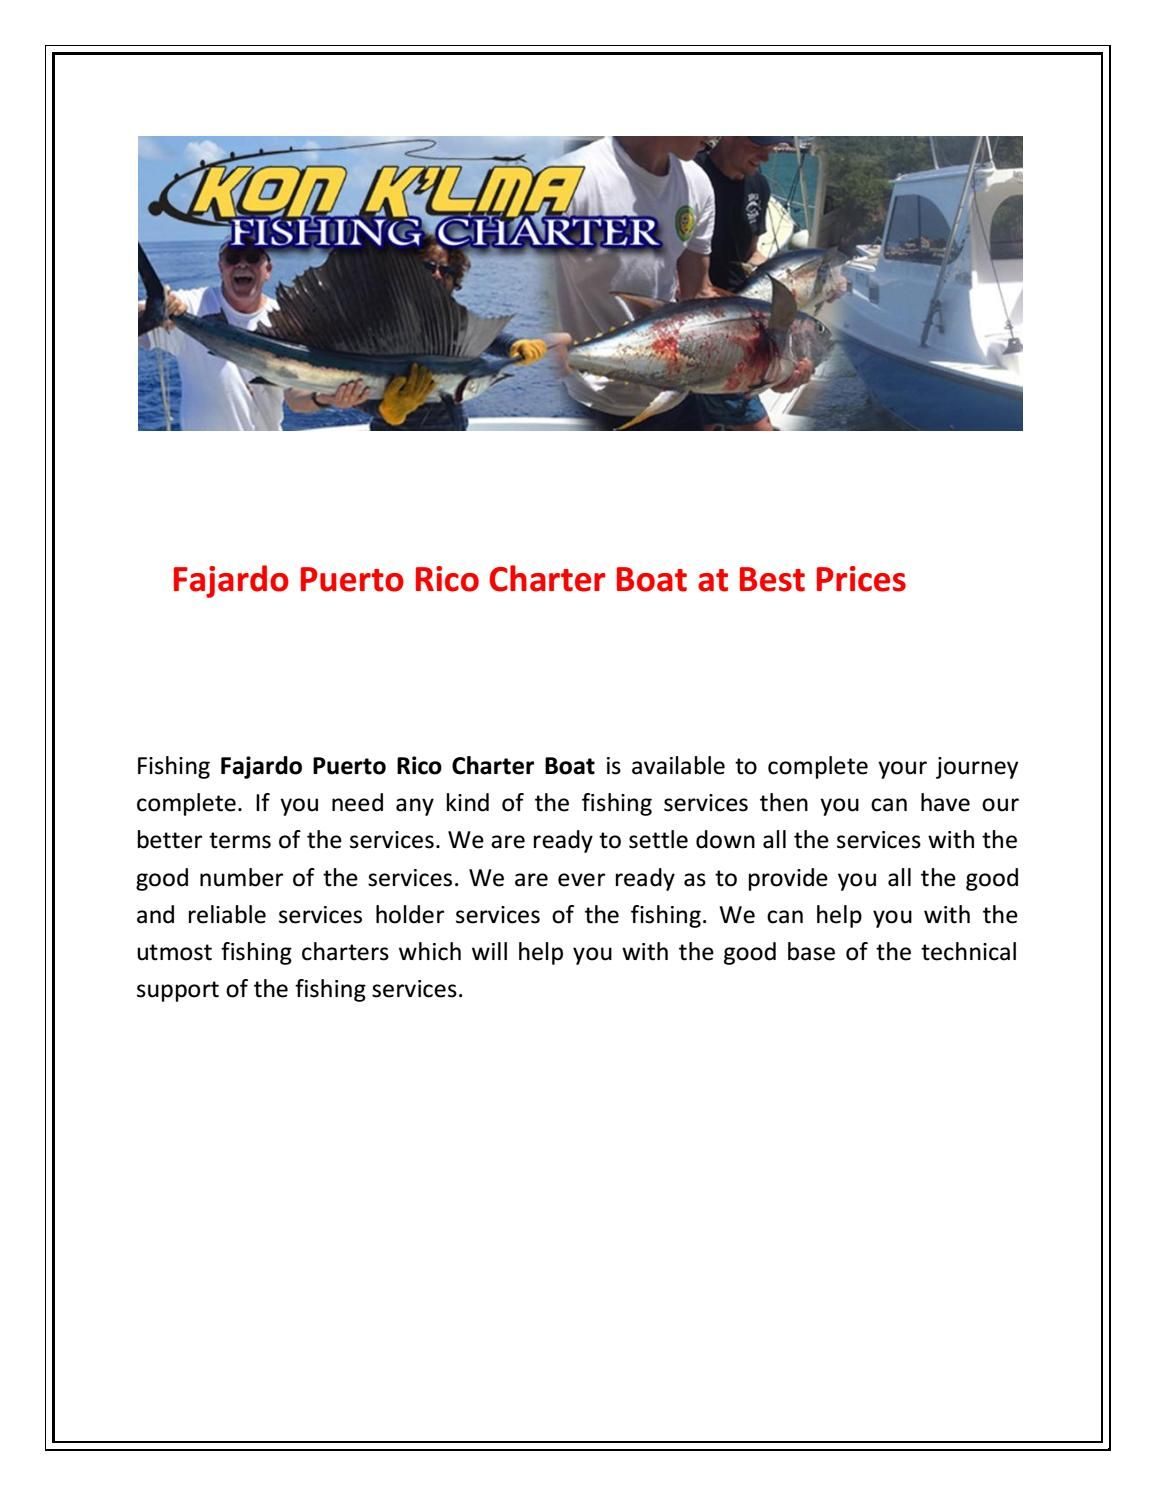 Fajardo puerto rico charter boat at best prices charter